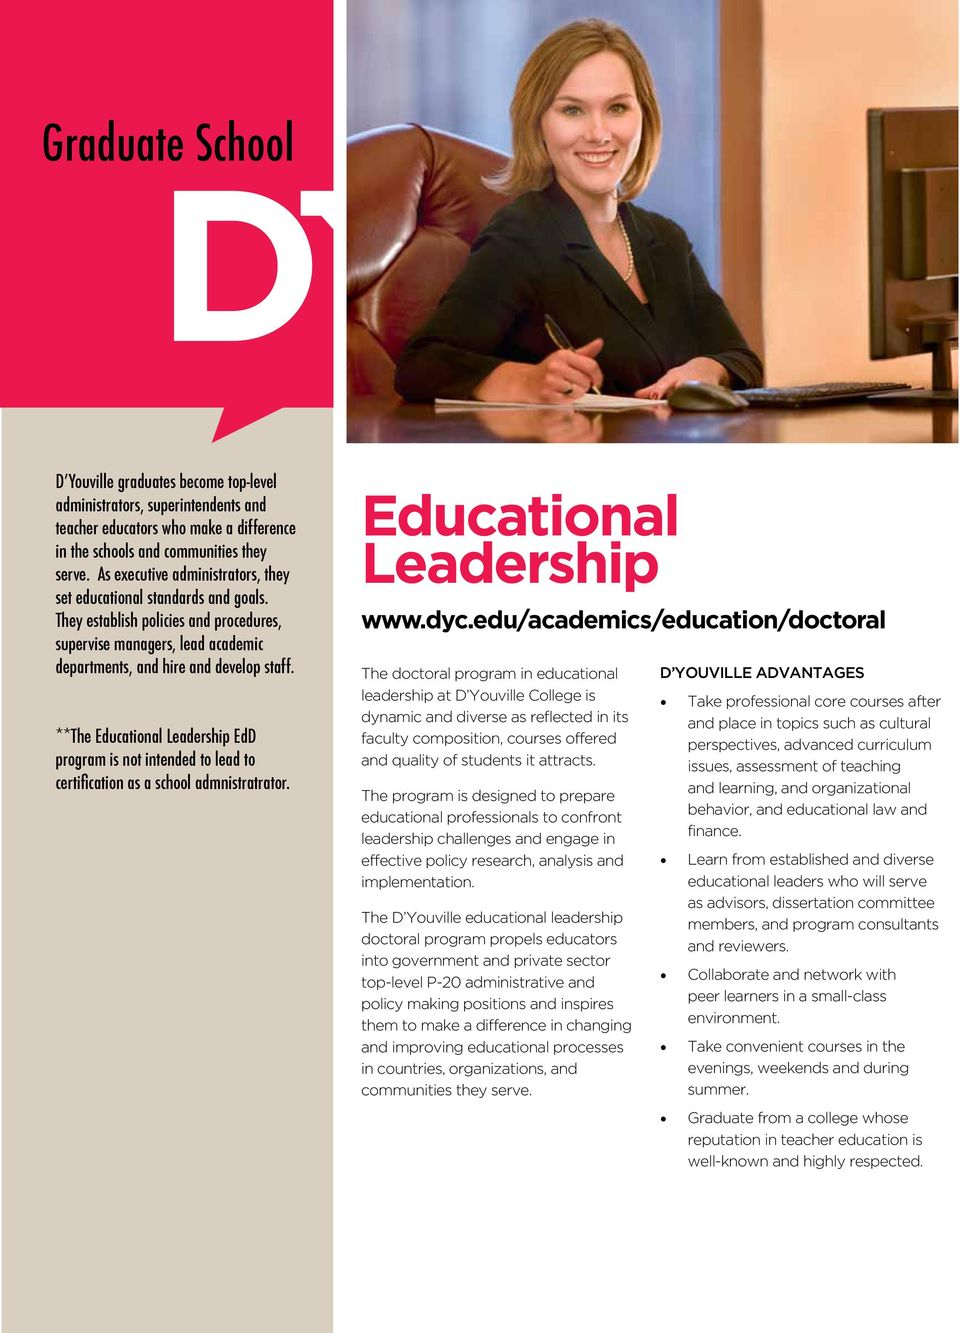 **The Educational Leadership EdD program is not intended to lead to certification as a school admnistratrator. Educational Leadership www.dyc.